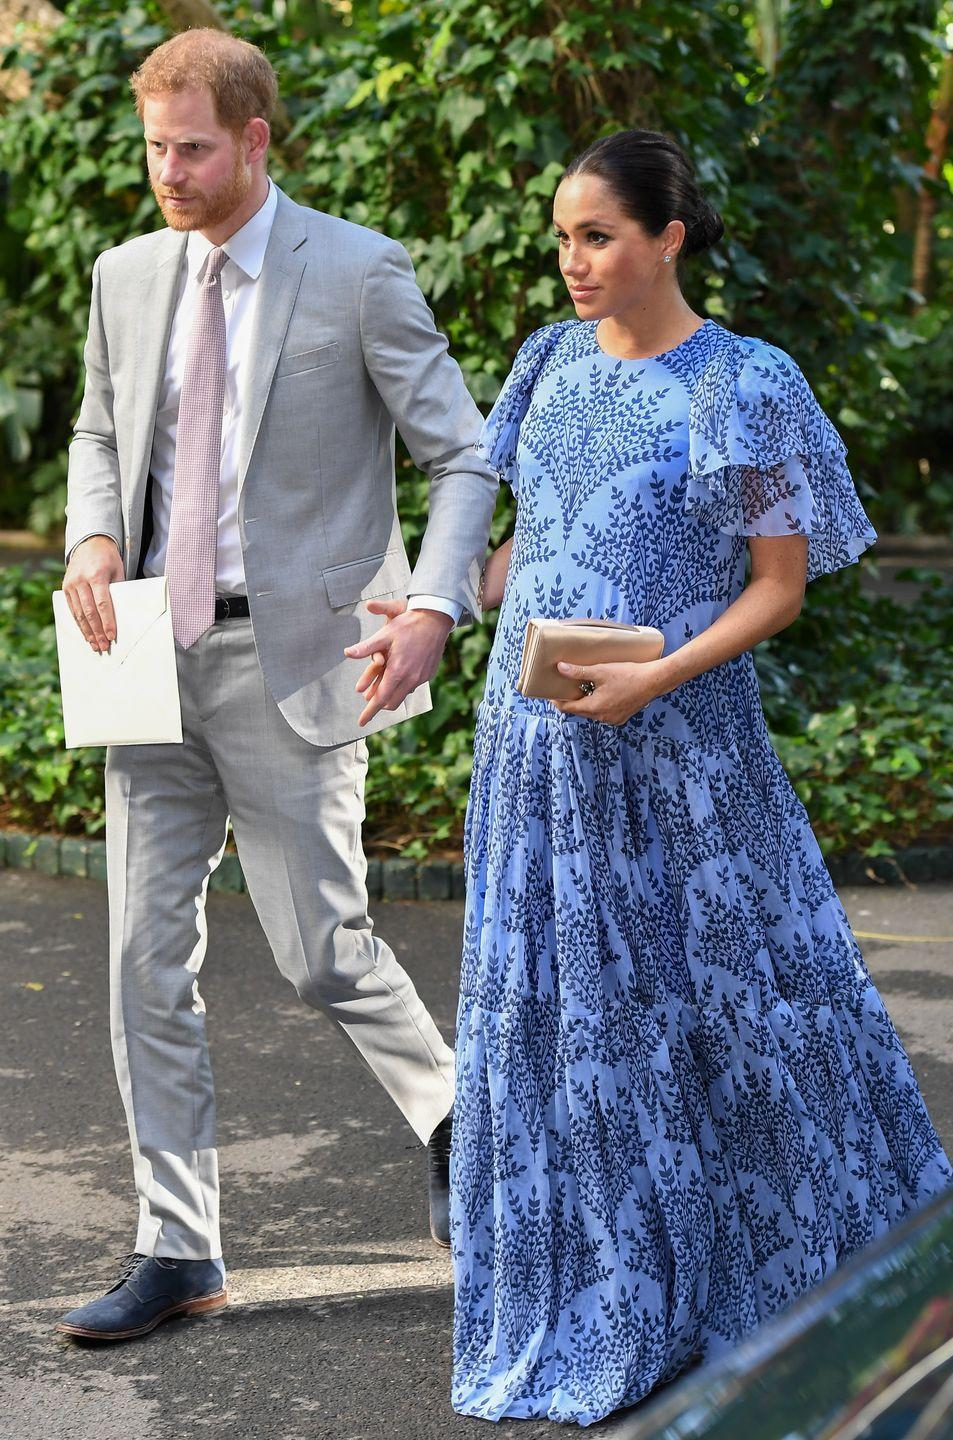 "<p>The royals dressed up for an audience with King Mohammed VI of Morocco on February 25, 2019 while <a href=""https://www.townandcountrymag.com/society/tradition/g26364847/prince-harry-and-meghan-markle-morocco-2019-visit-photos/"" rel=""nofollow noopener"" target=""_blank"" data-ylk=""slk:on their royal visit"" class=""link rapid-noclick-resp"">on their royal visit</a>.</p>"